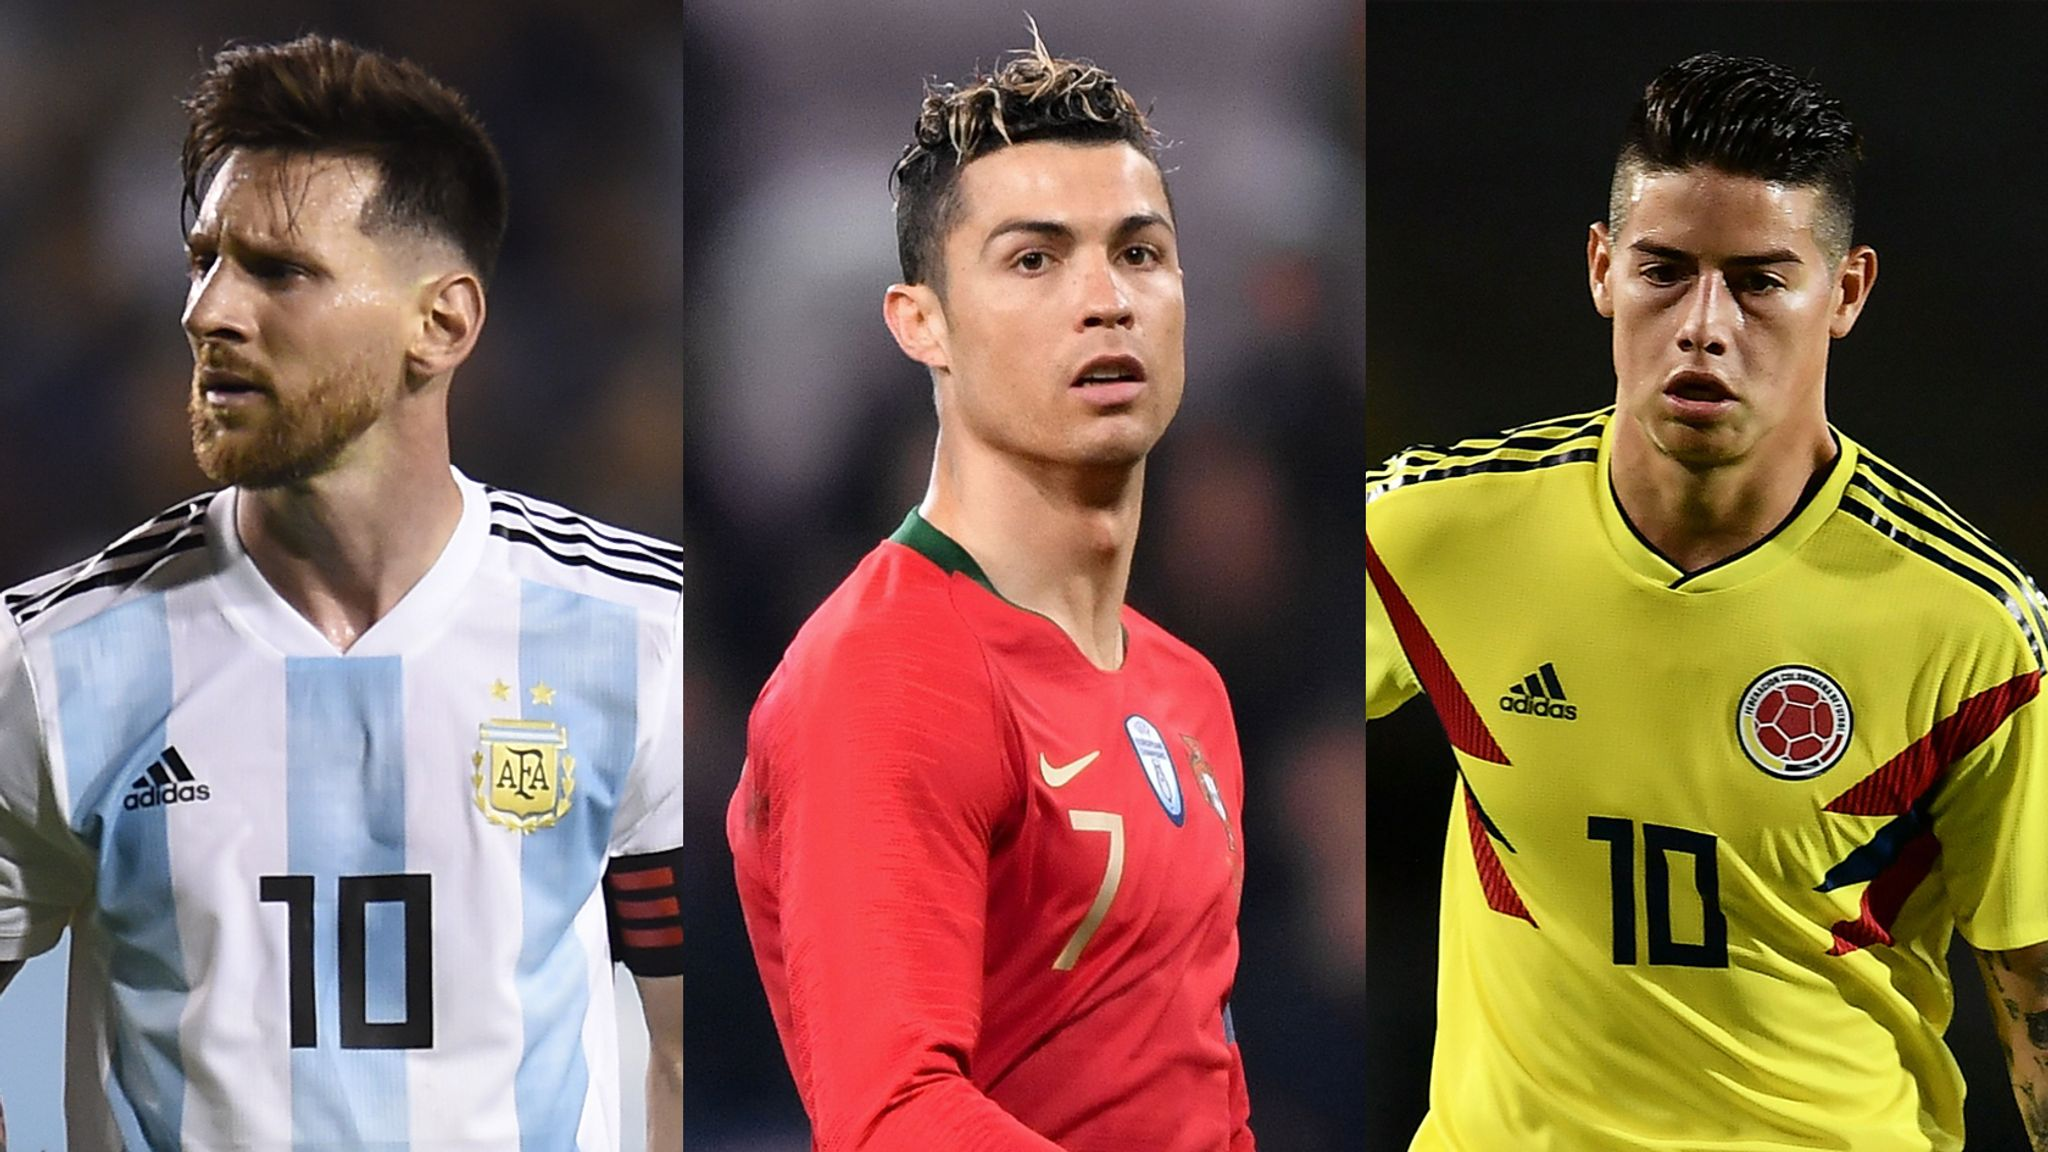 World Cup Best Xi Based On Stats Cristiano Ronaldo Lionel Messi James Rodriguez And More Football News Sky Sports